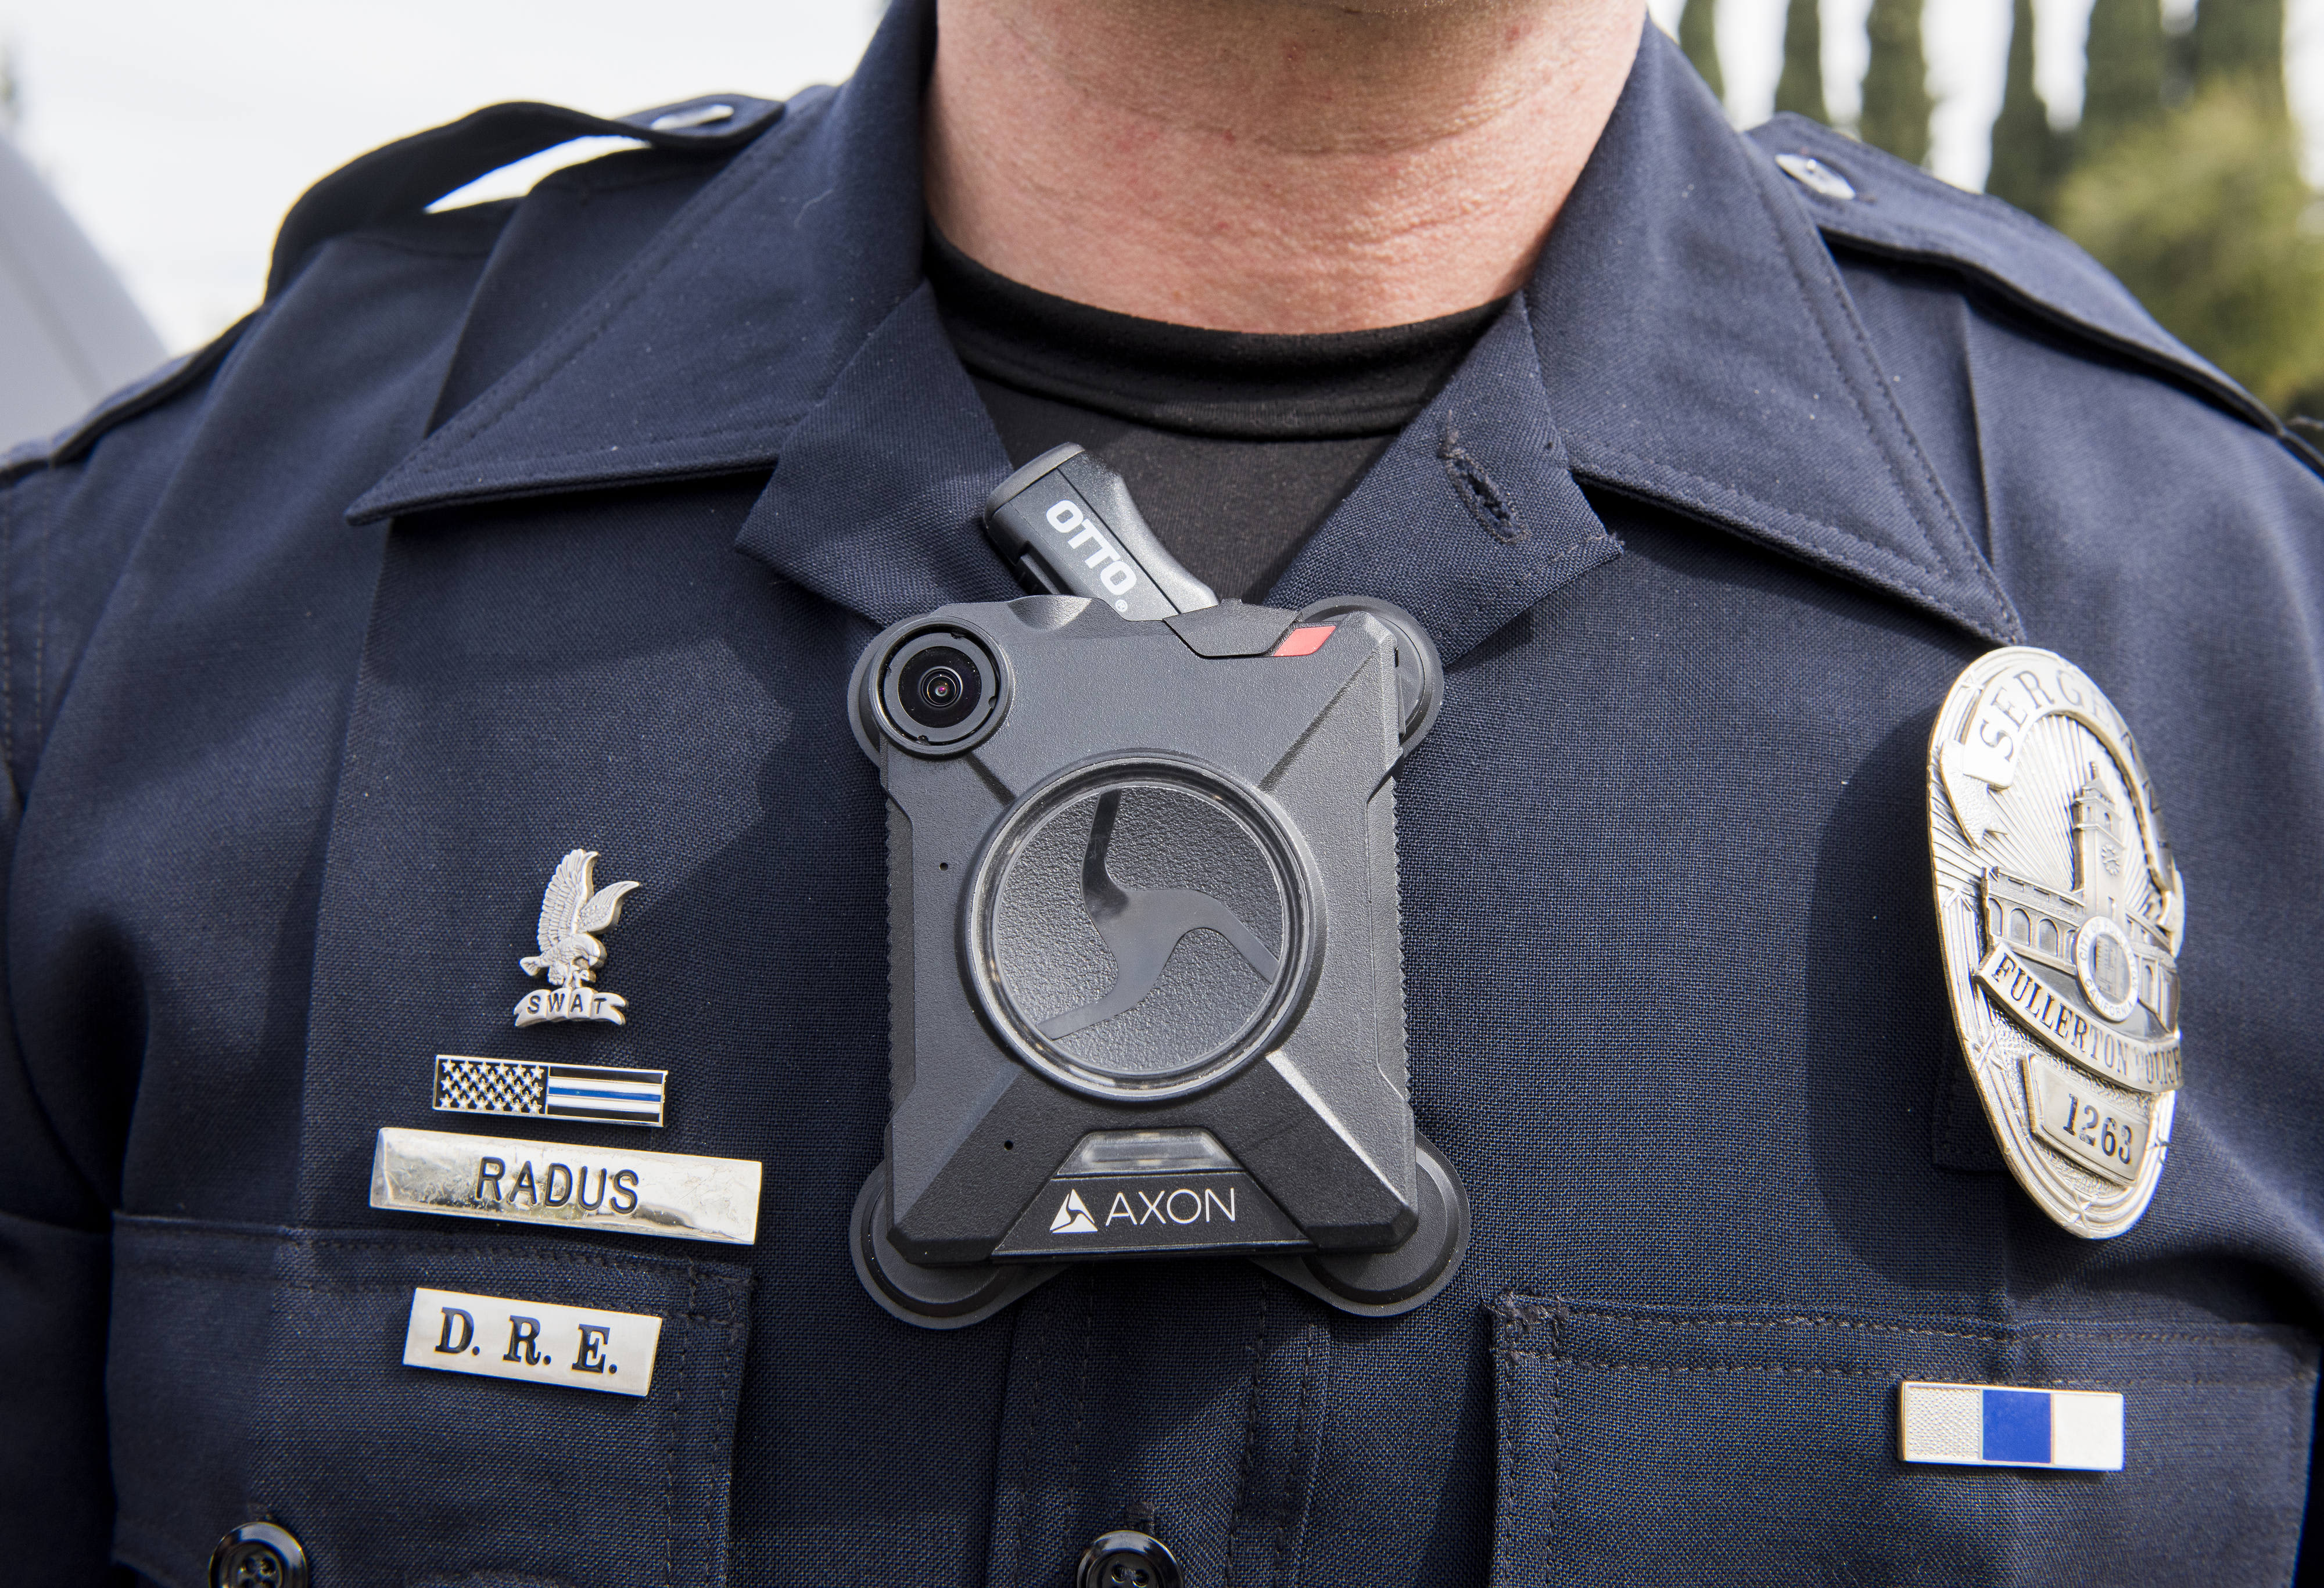 Taser-maker Axon is looking a lot more like Apple, Amazon, and so is the future of law enforcement